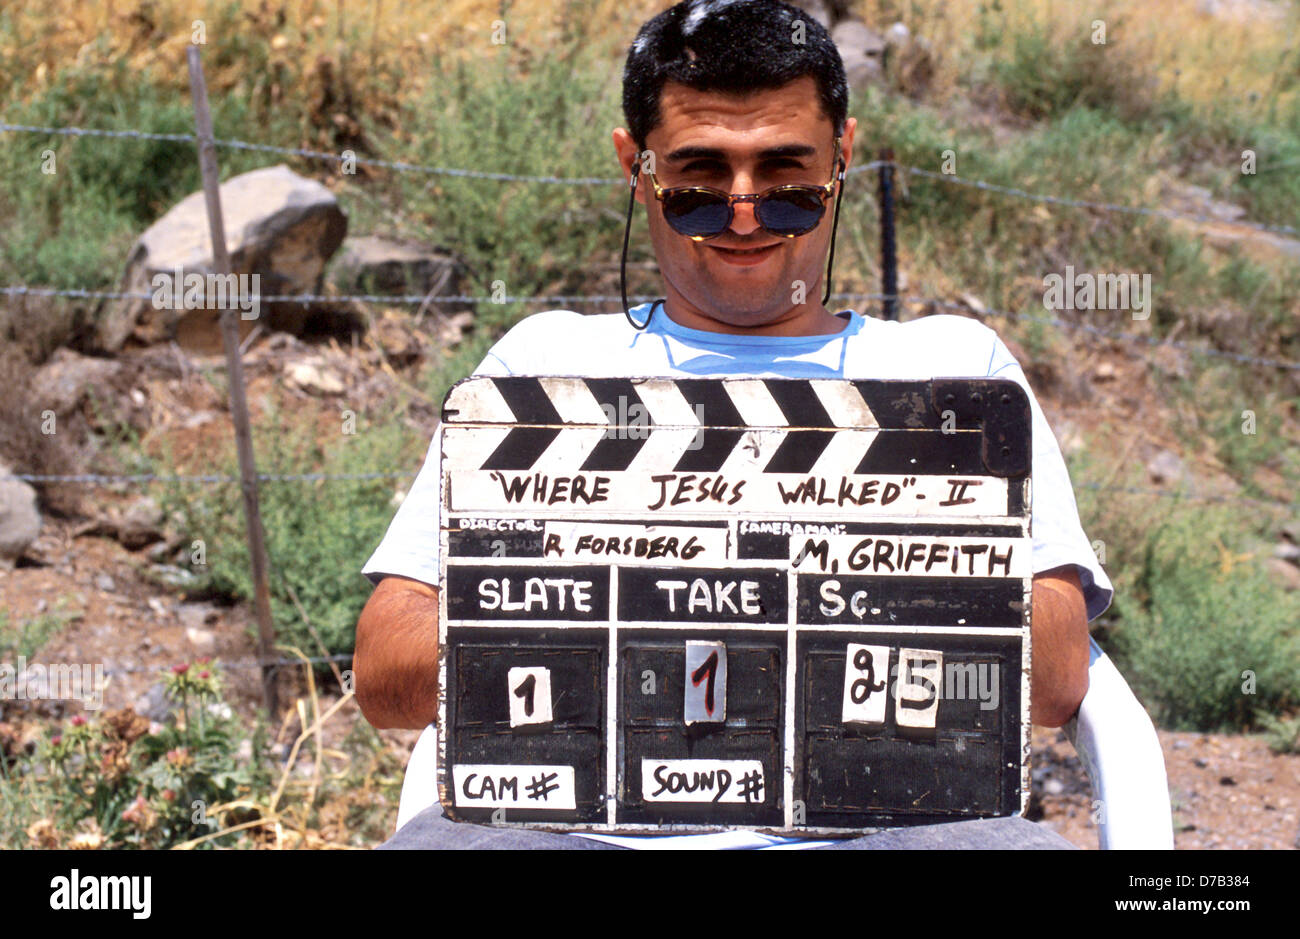 at production set of a movie - Stock Image